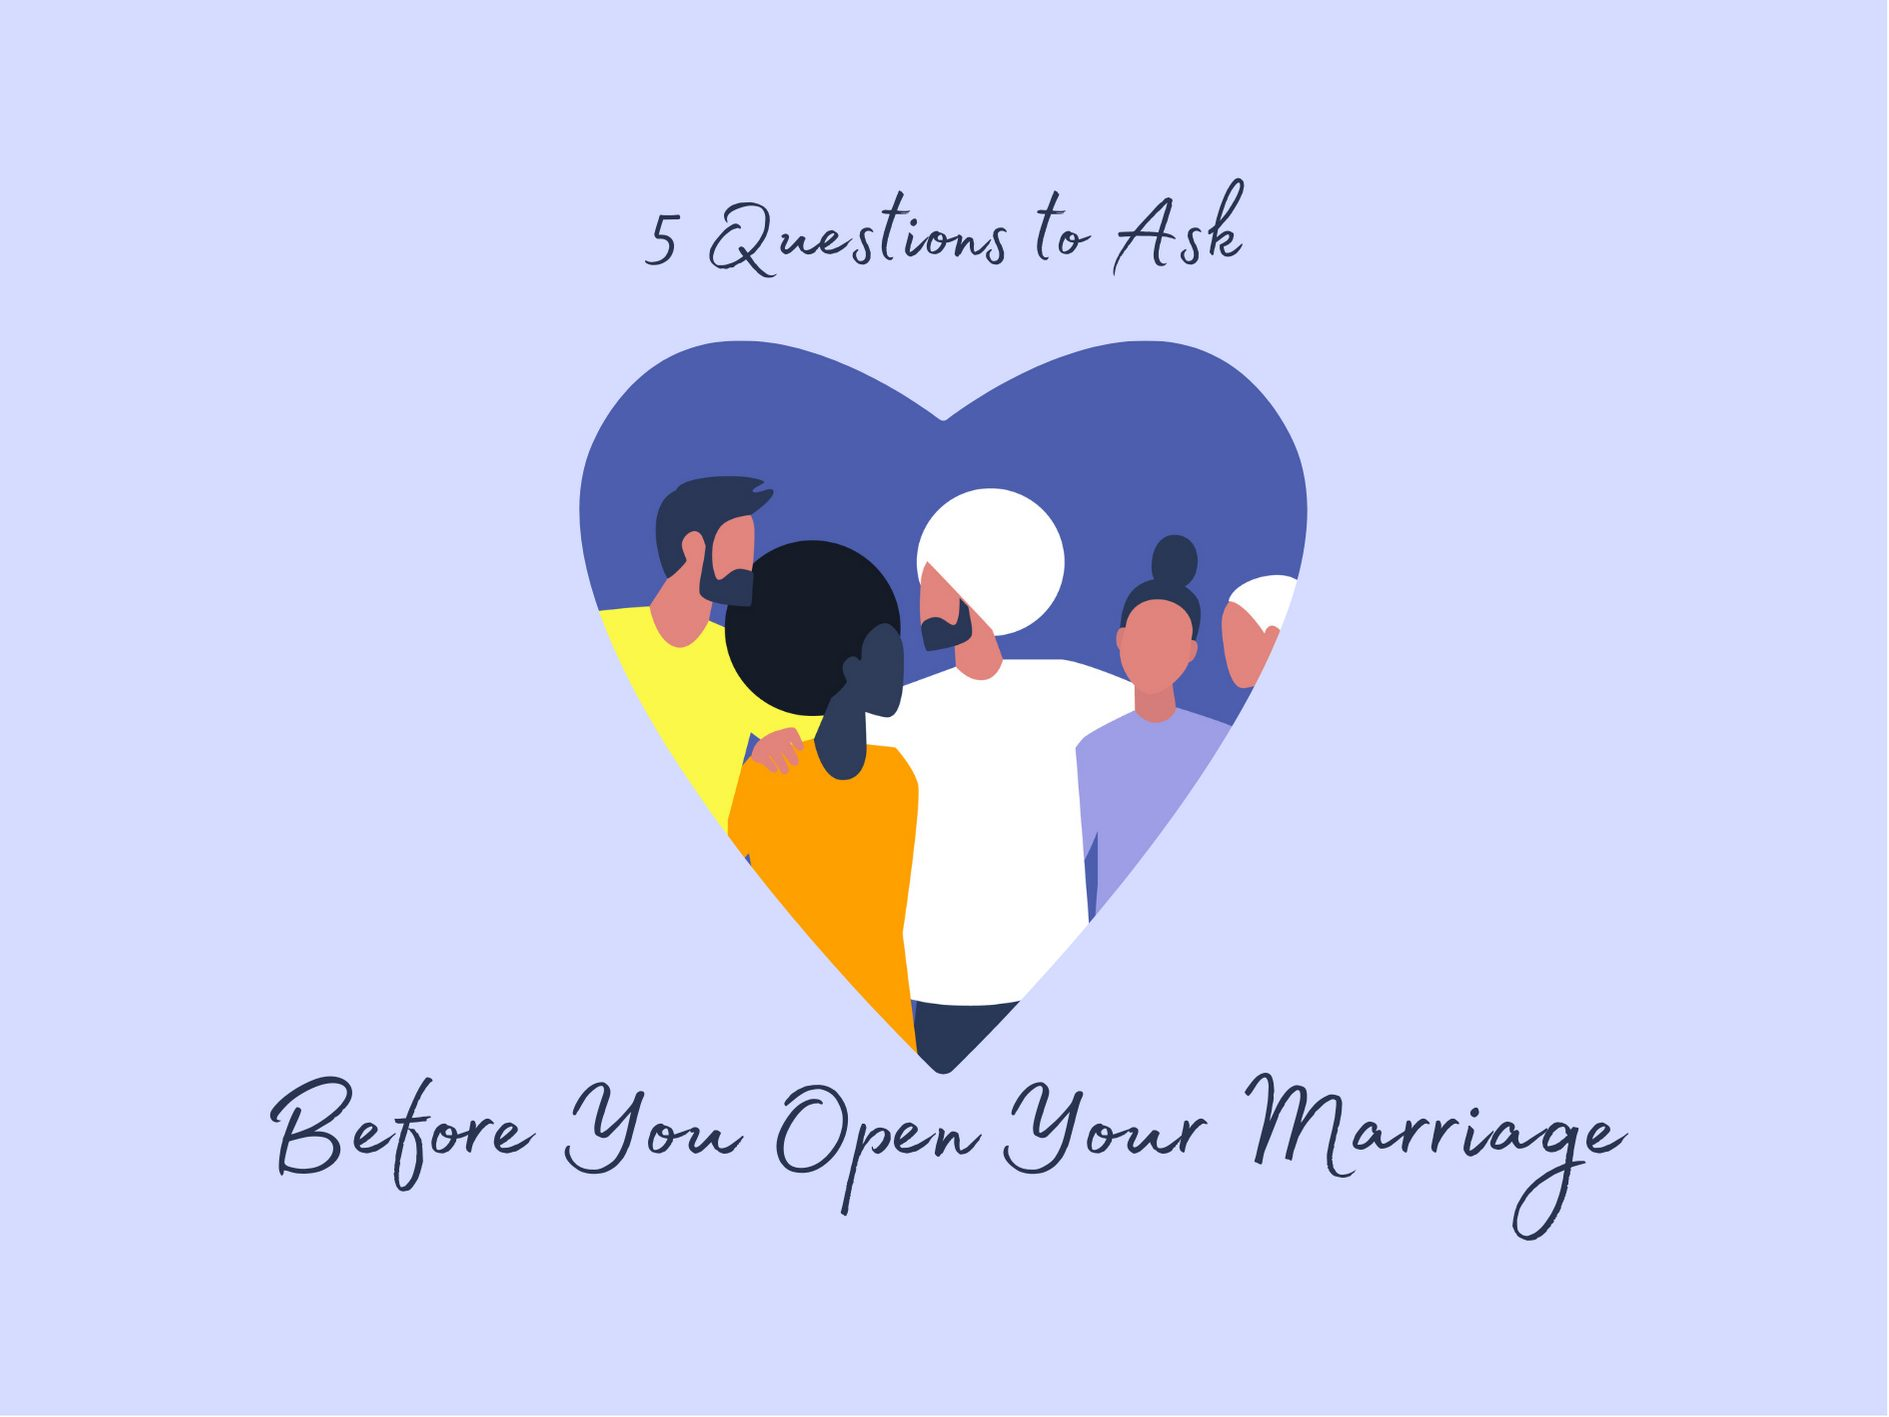 [Guest Post] 5 Questions to Ask Before You Open Your Marriage by Minda Lane